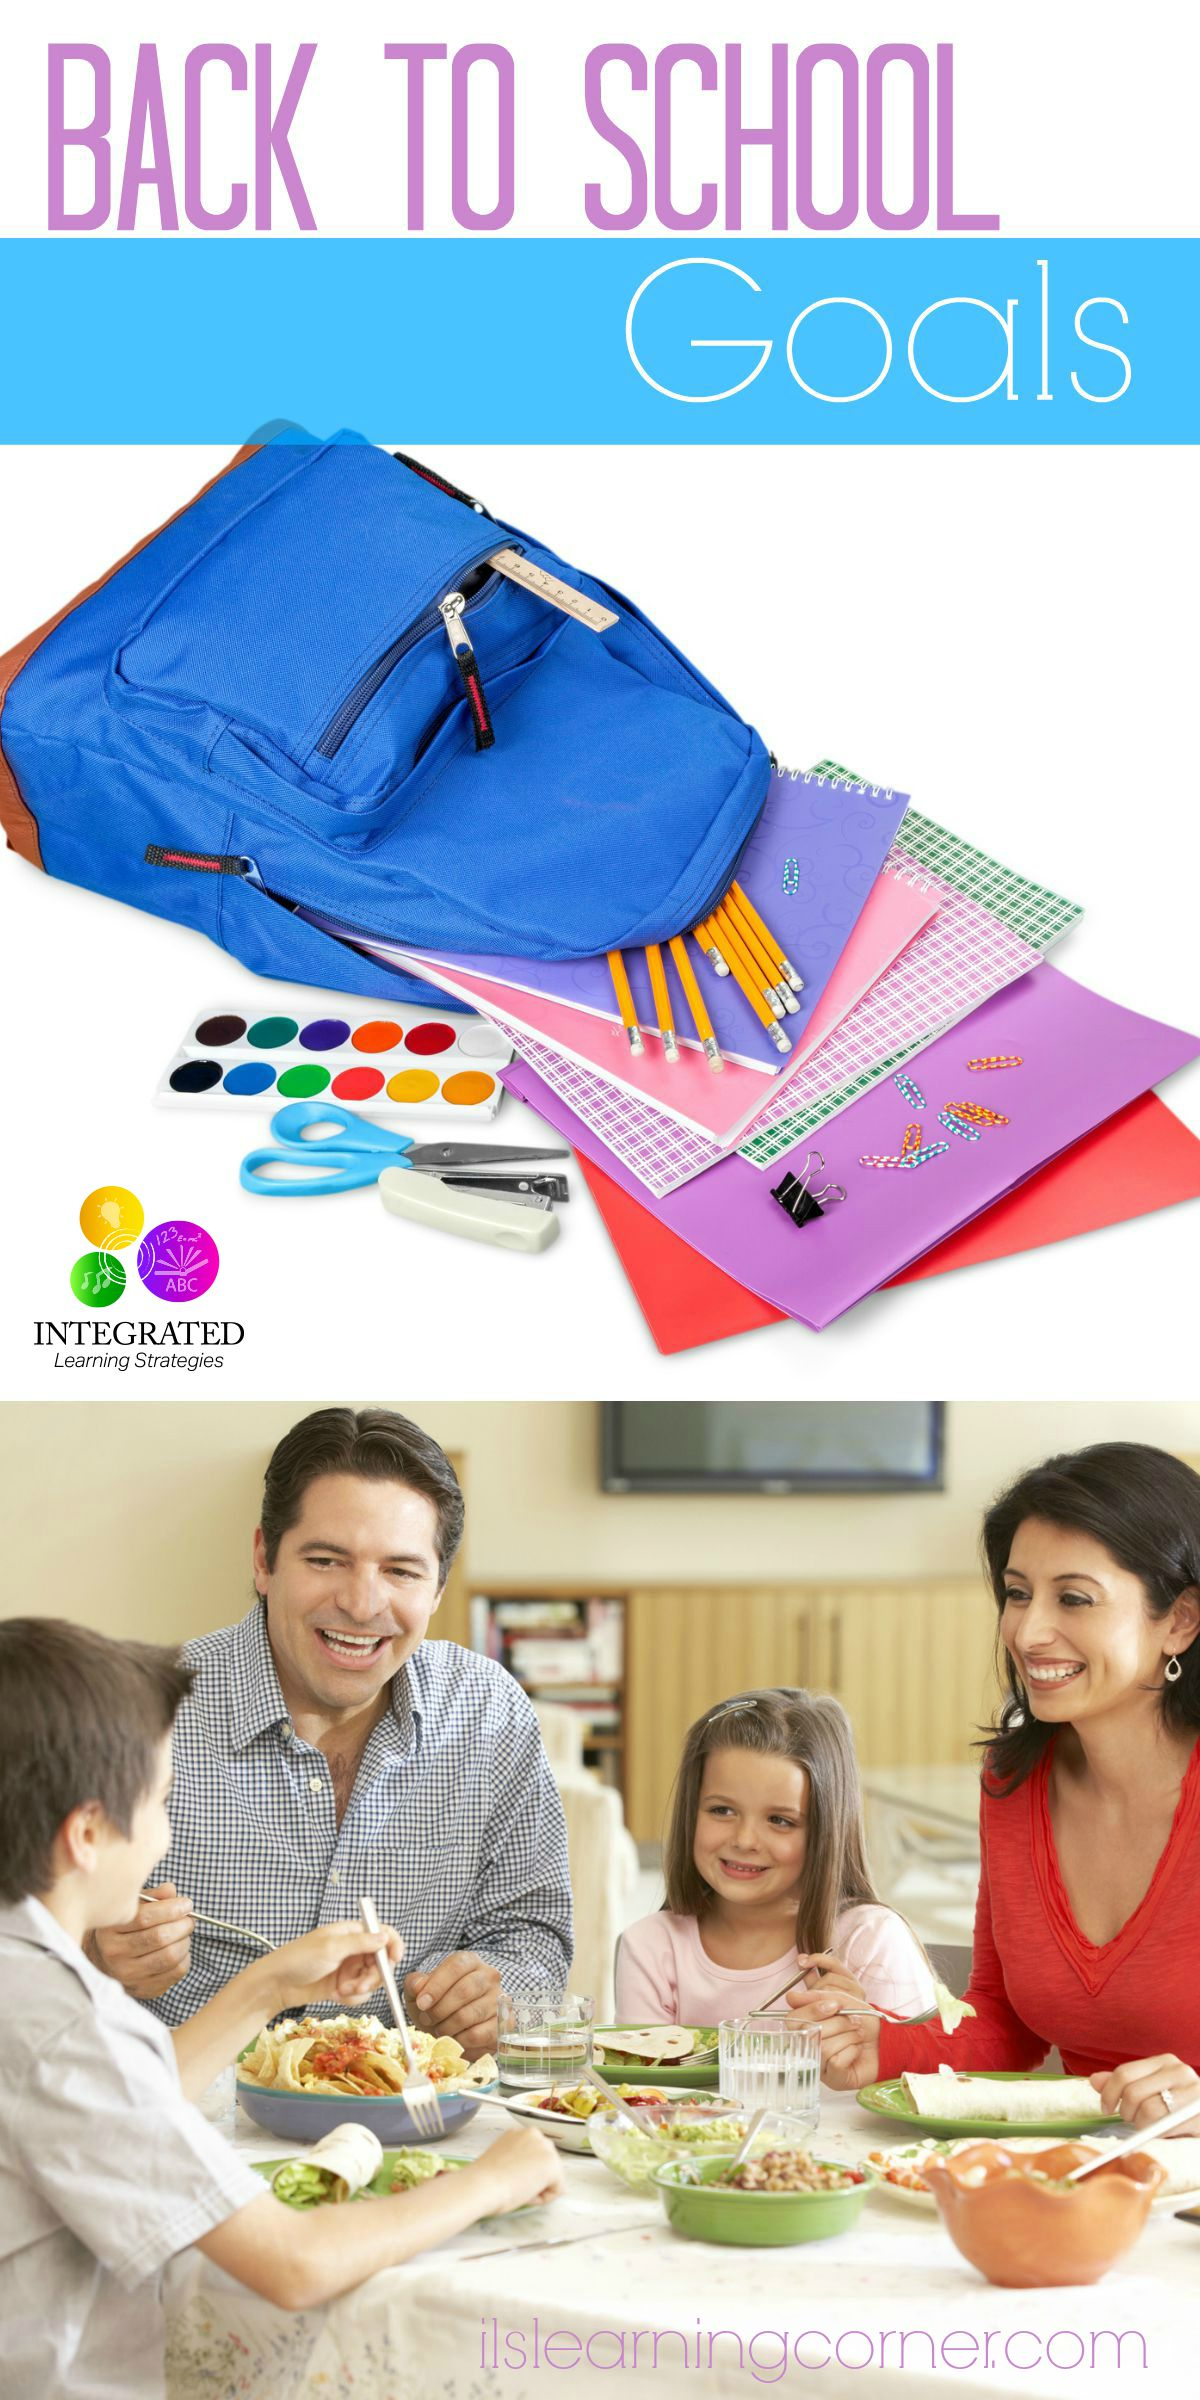 Back To Basics With Back To School Goals